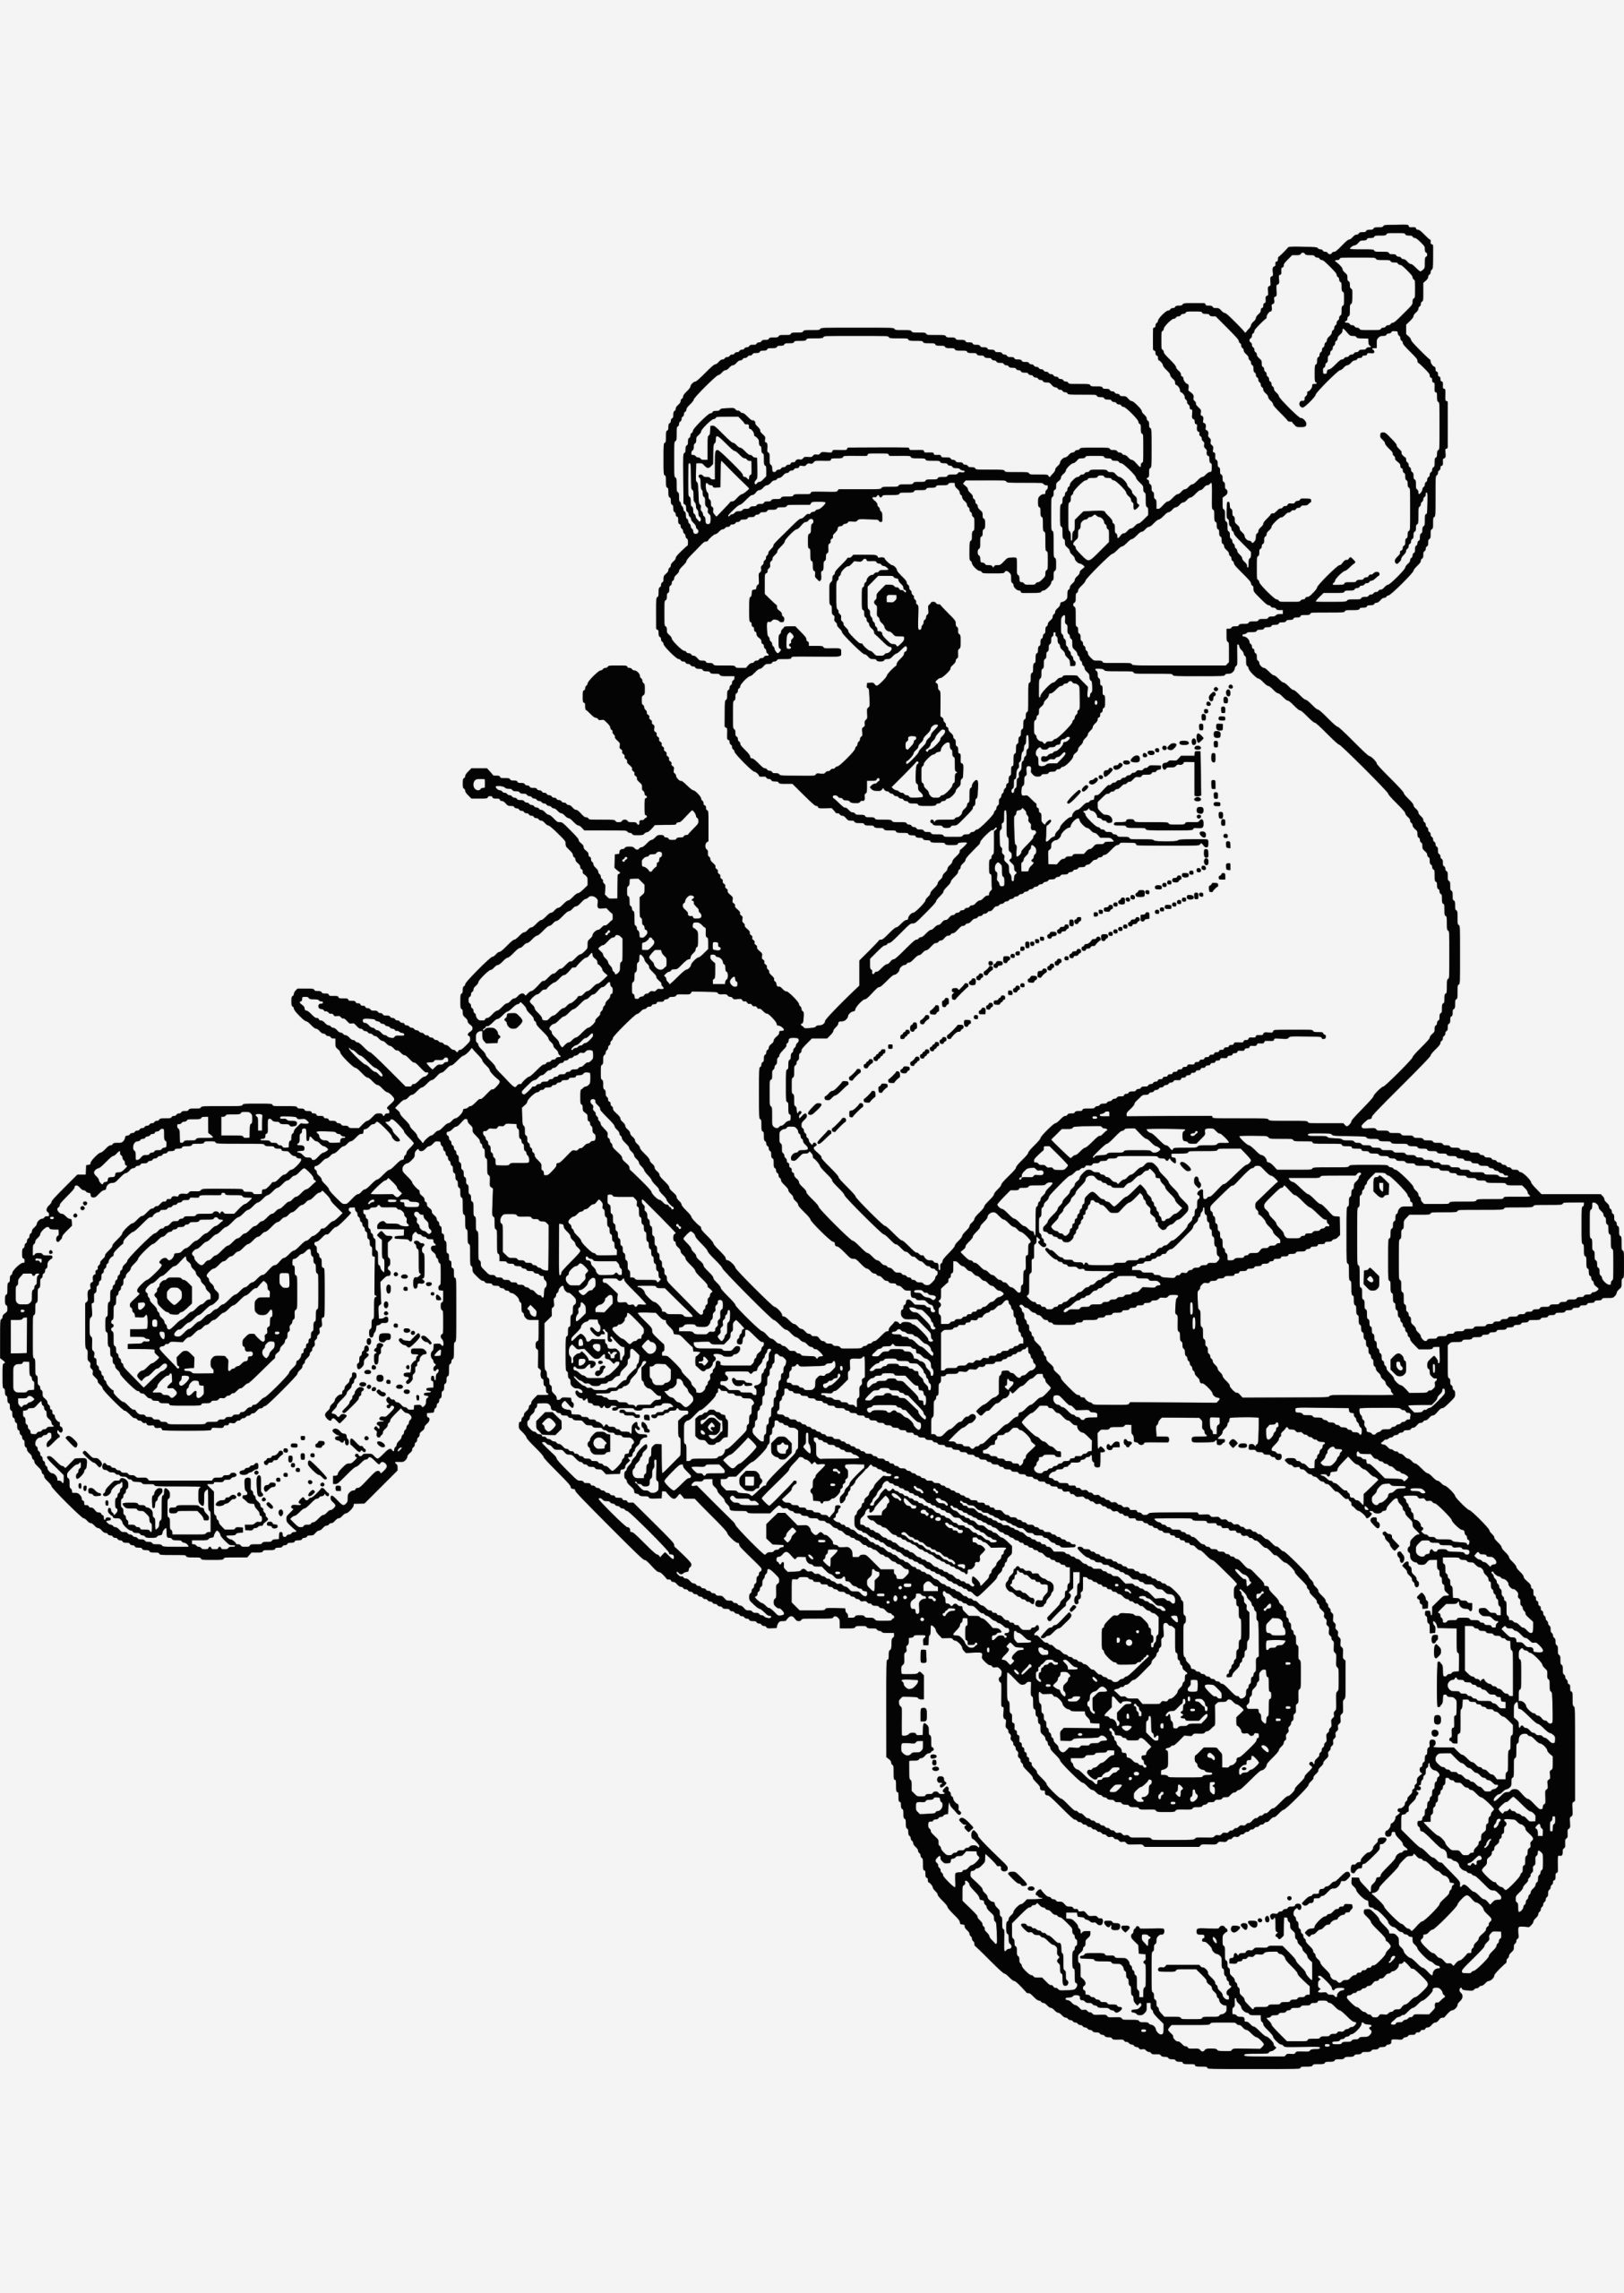 Coloriage Moto Cross à Imprimer Gratuit Inspirational Coloriage Moto Cross A Imprimer Gratuit Coloriage Ideas Of Coloriage Moto Cross à Imprimer Gratuit